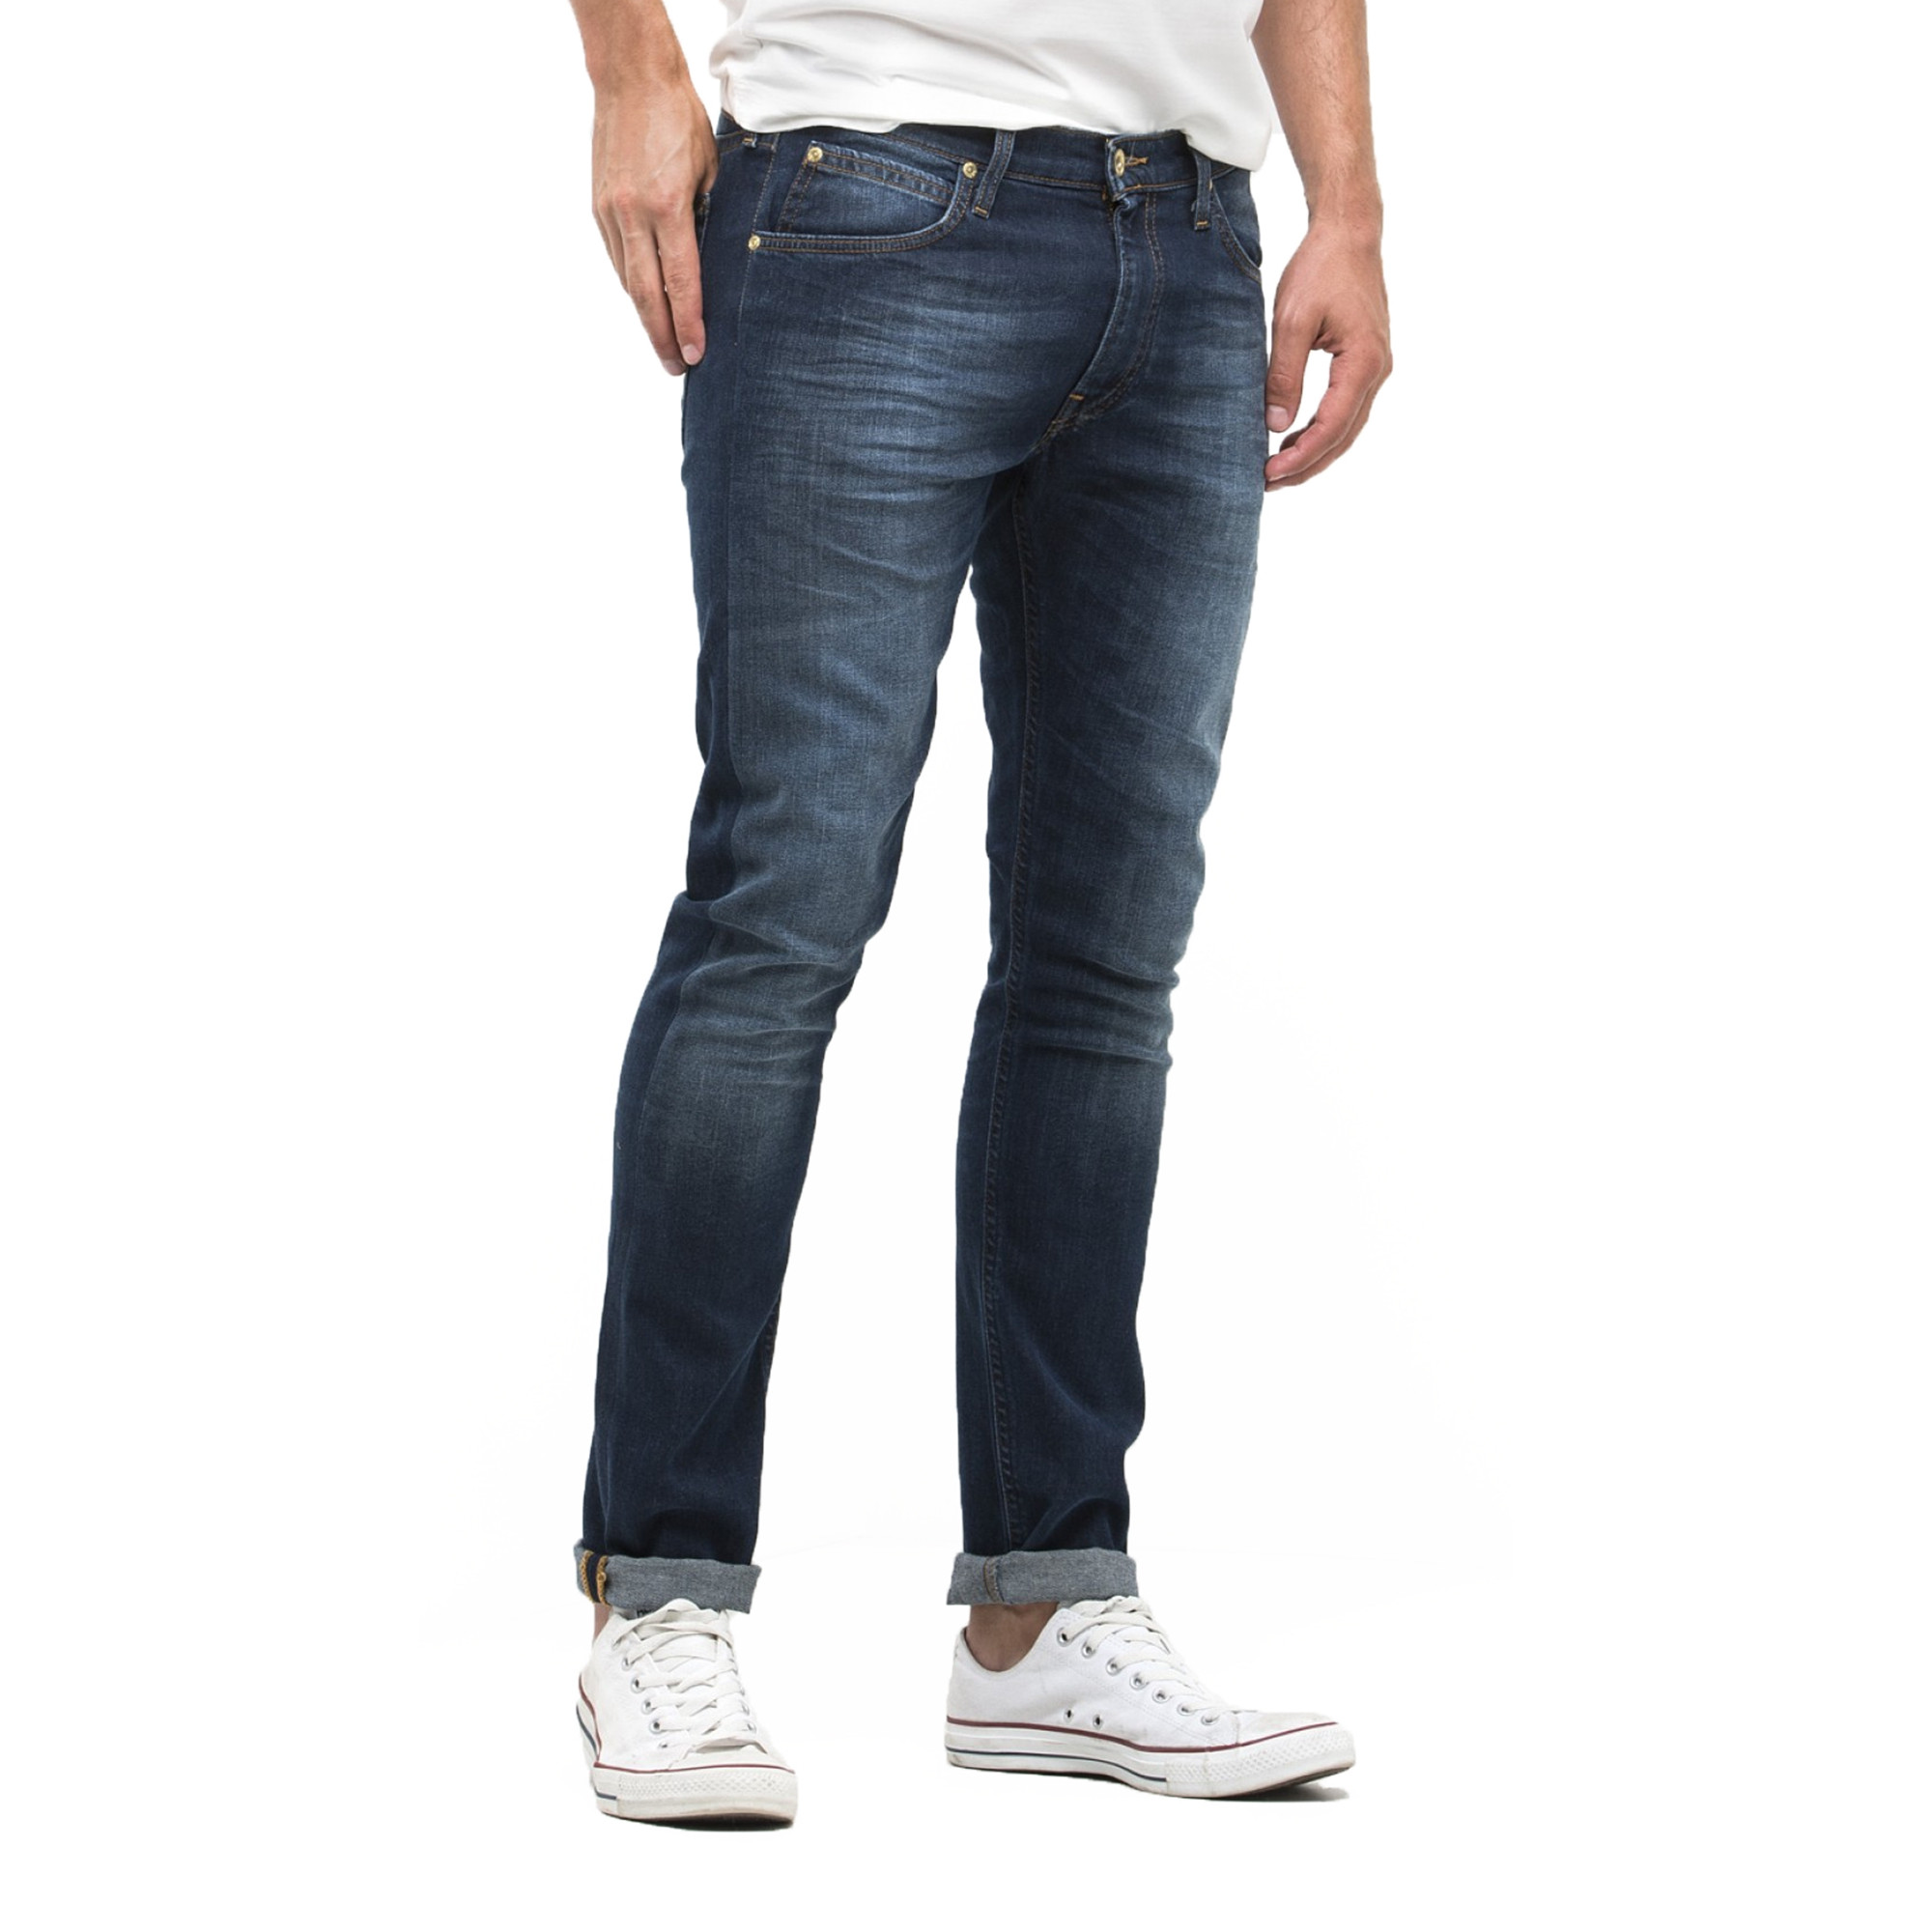 199c5501 Lee Luke Slim Tapered Faded True Authentic Denim Jeans | Jean Scene